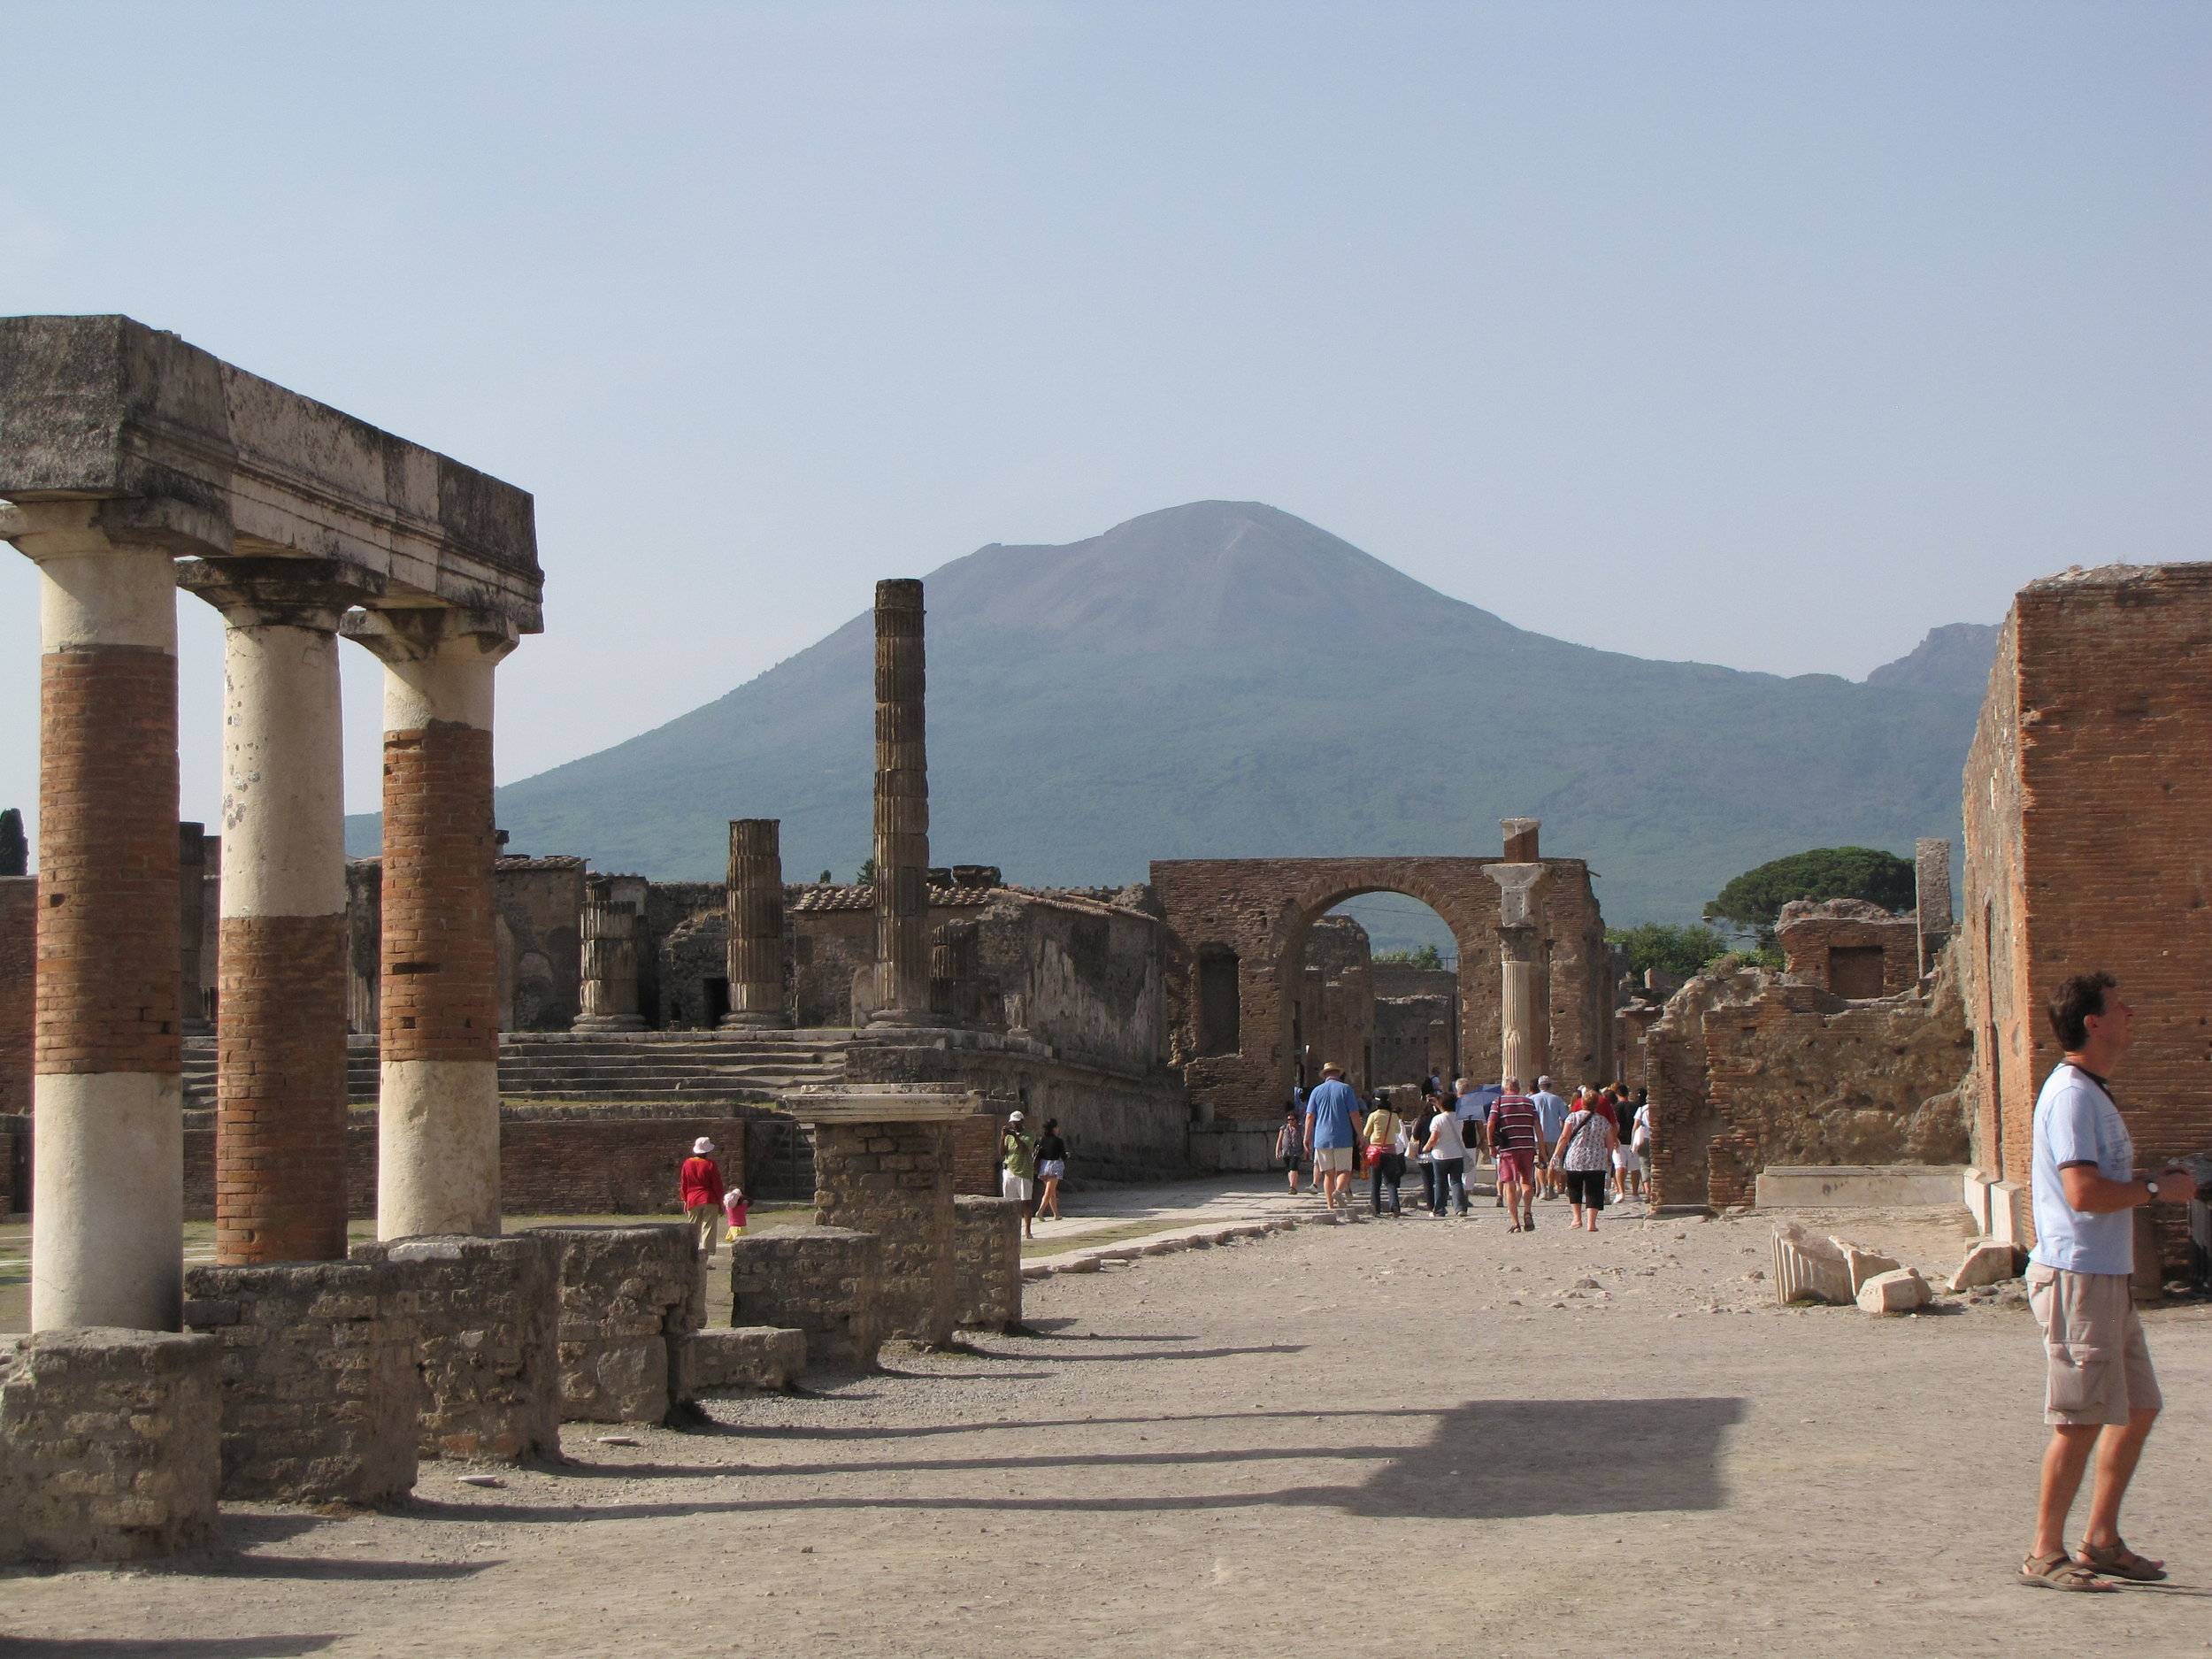 Pompeii Forum. In the background is Mt Vesuvius, the volcano that erupted in 79 A.D and buried the entire town in 30 feet of hot volcanic ash.